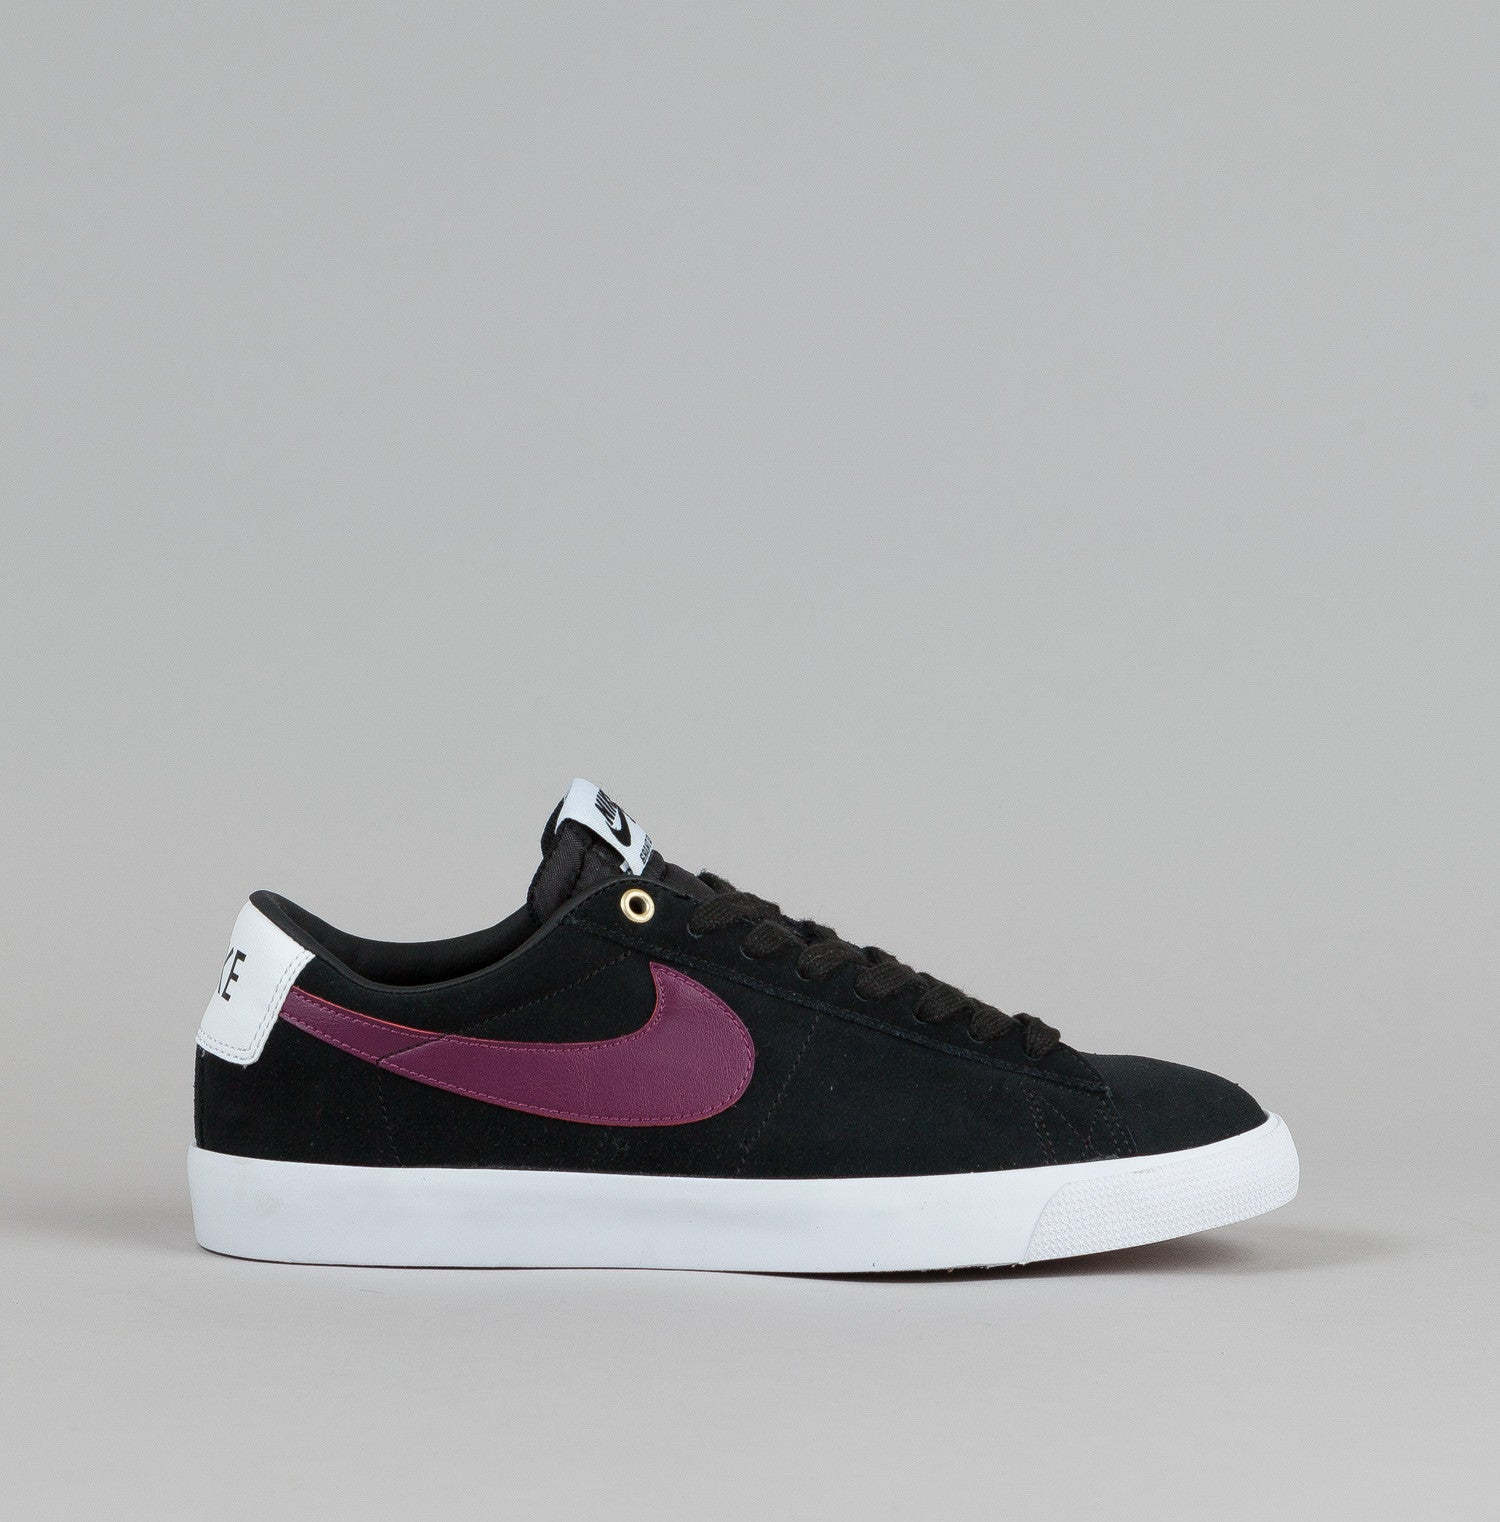 Nike SB Blazer Low GT Shoes Black / Villain Red